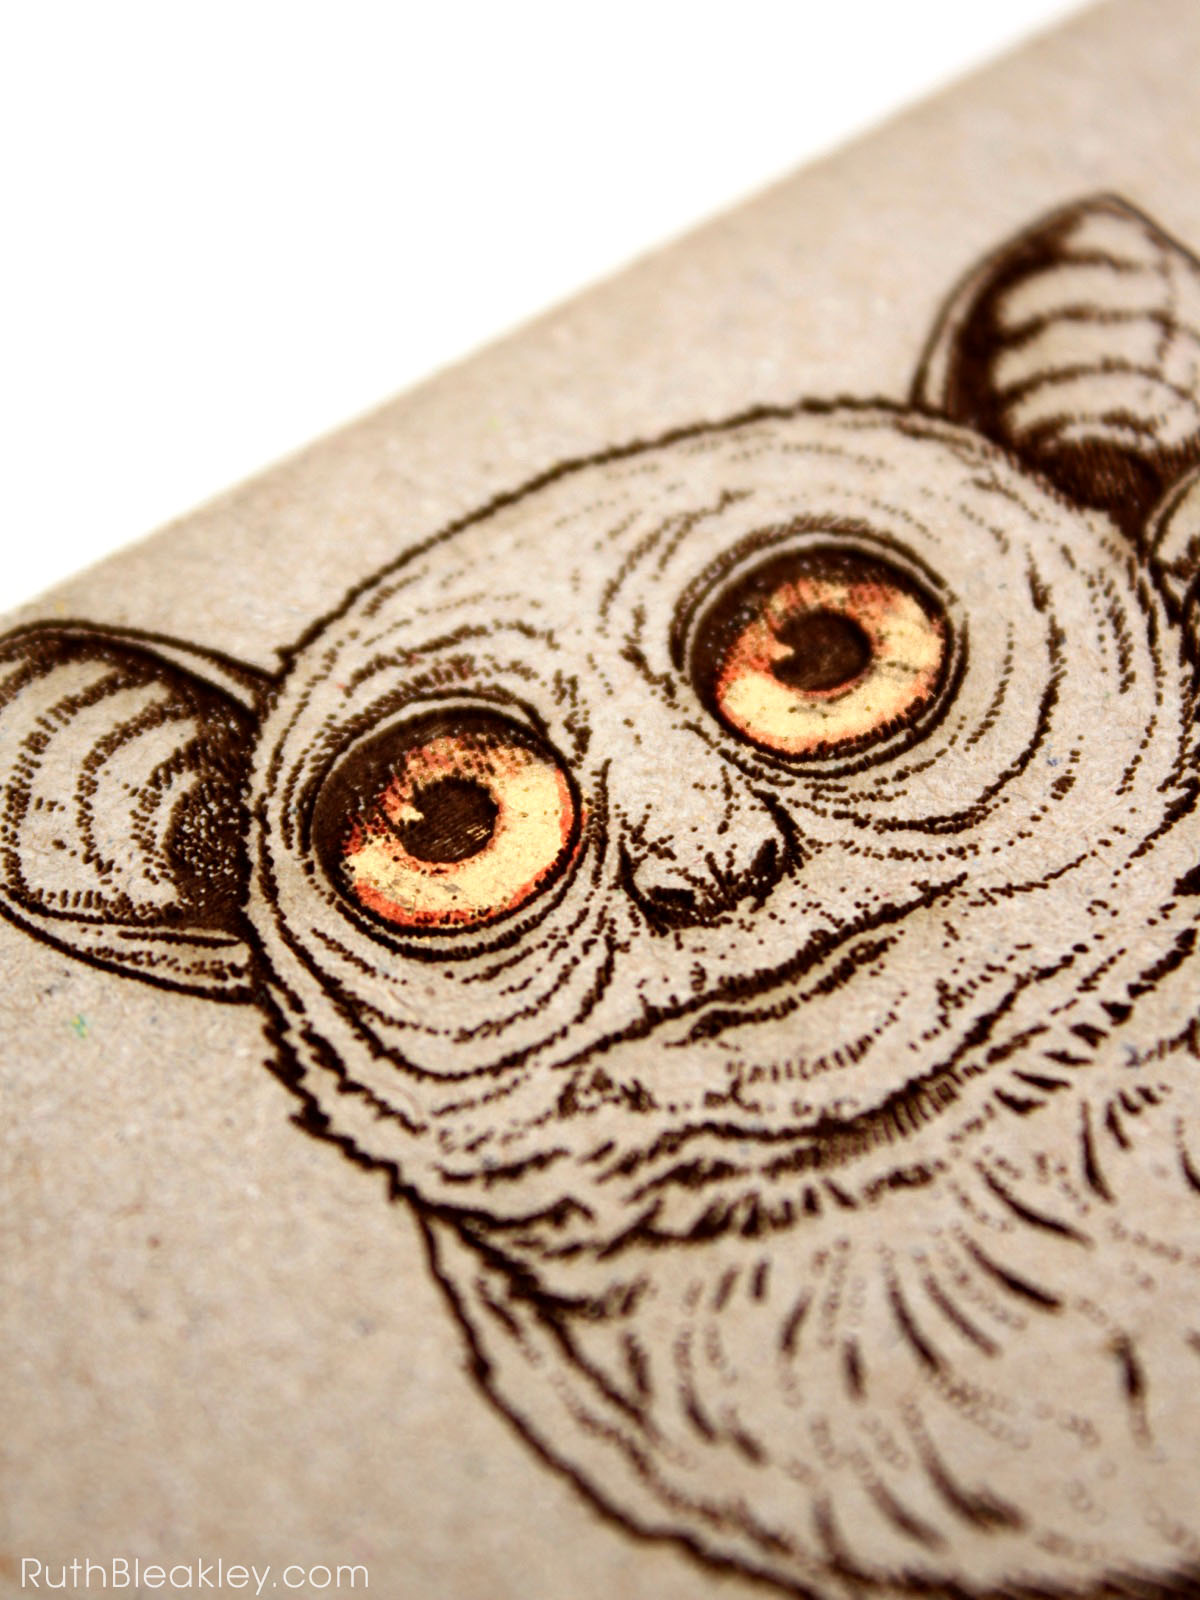 Koboldmaki laser engraved journal handmade by book artist Ruth Bleakley - closeup of the golden eyes